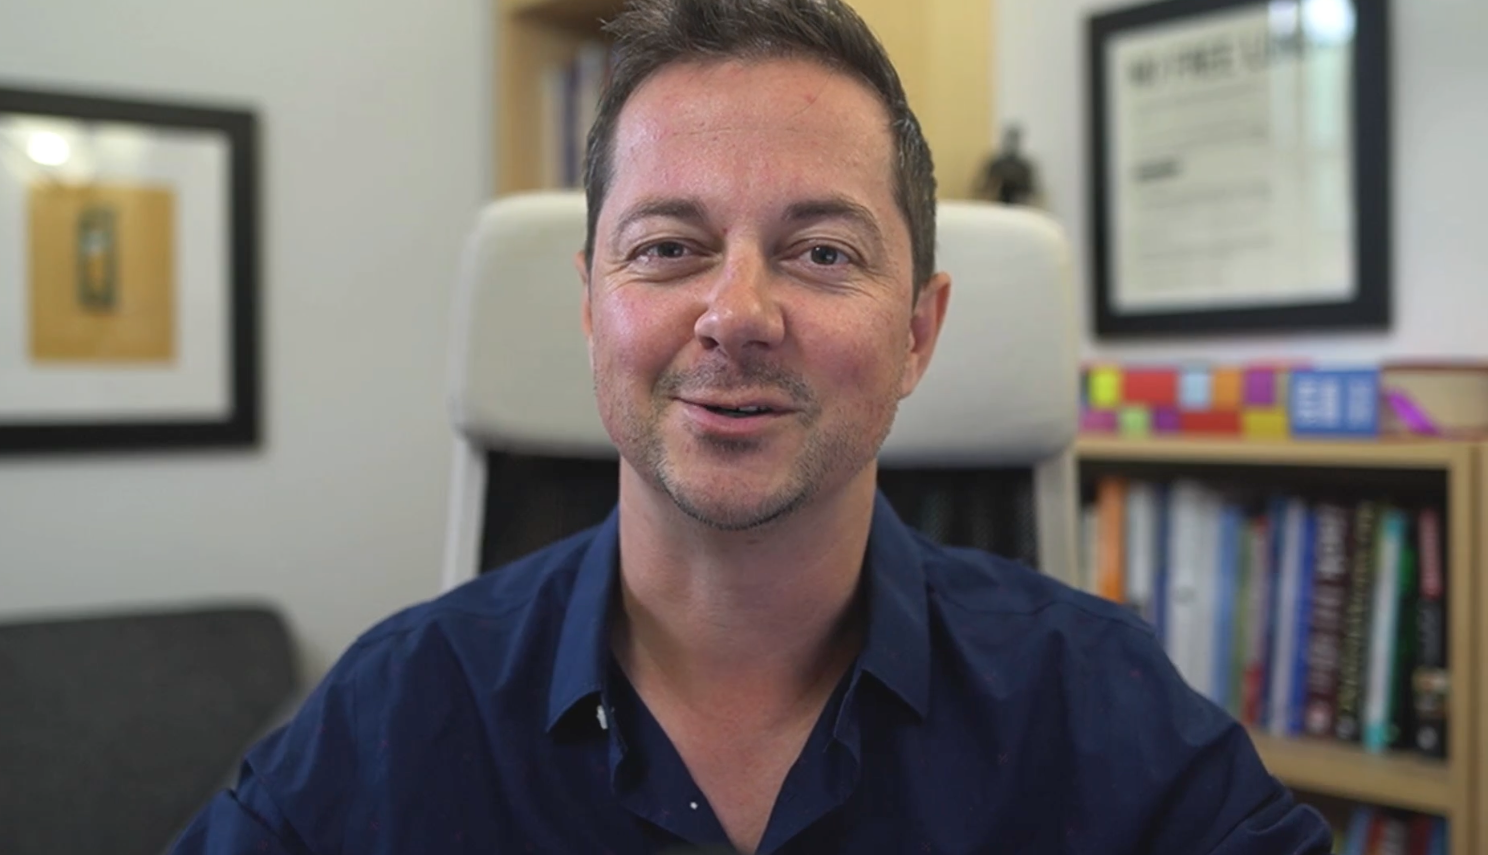 A video message from our Founder, Chris Taylor